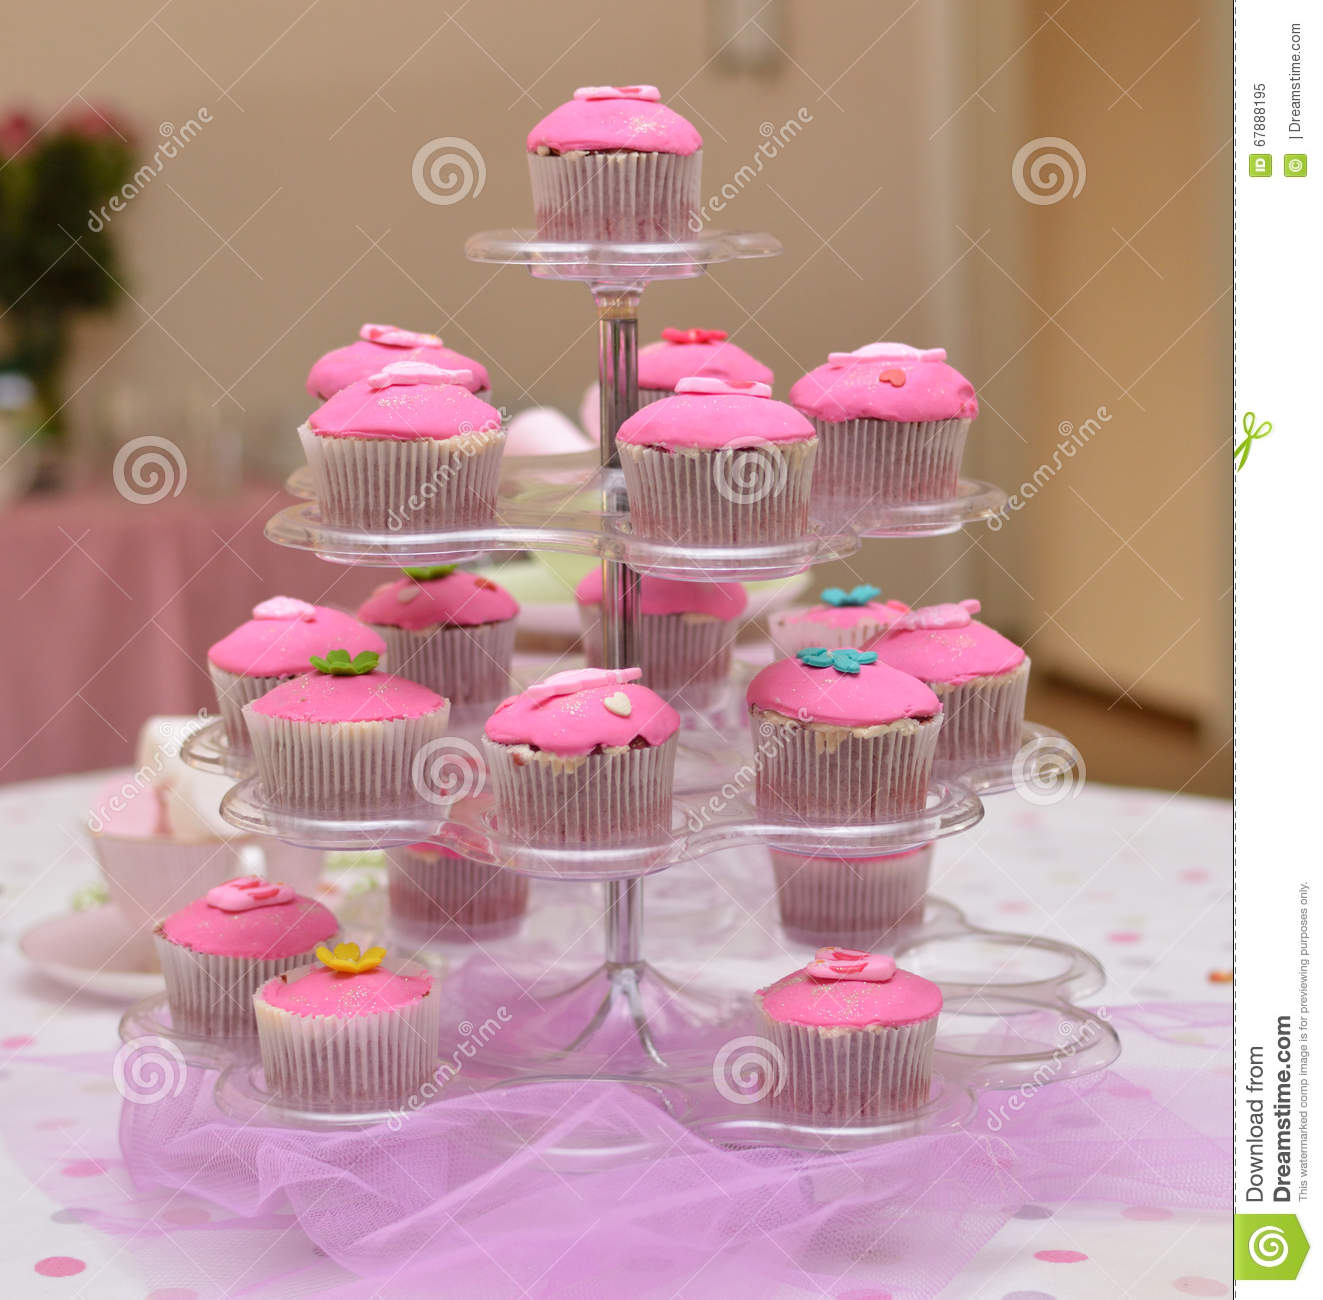 Pink Cupcakes On A Stand Stock Image Image Of Girl Young 67888195